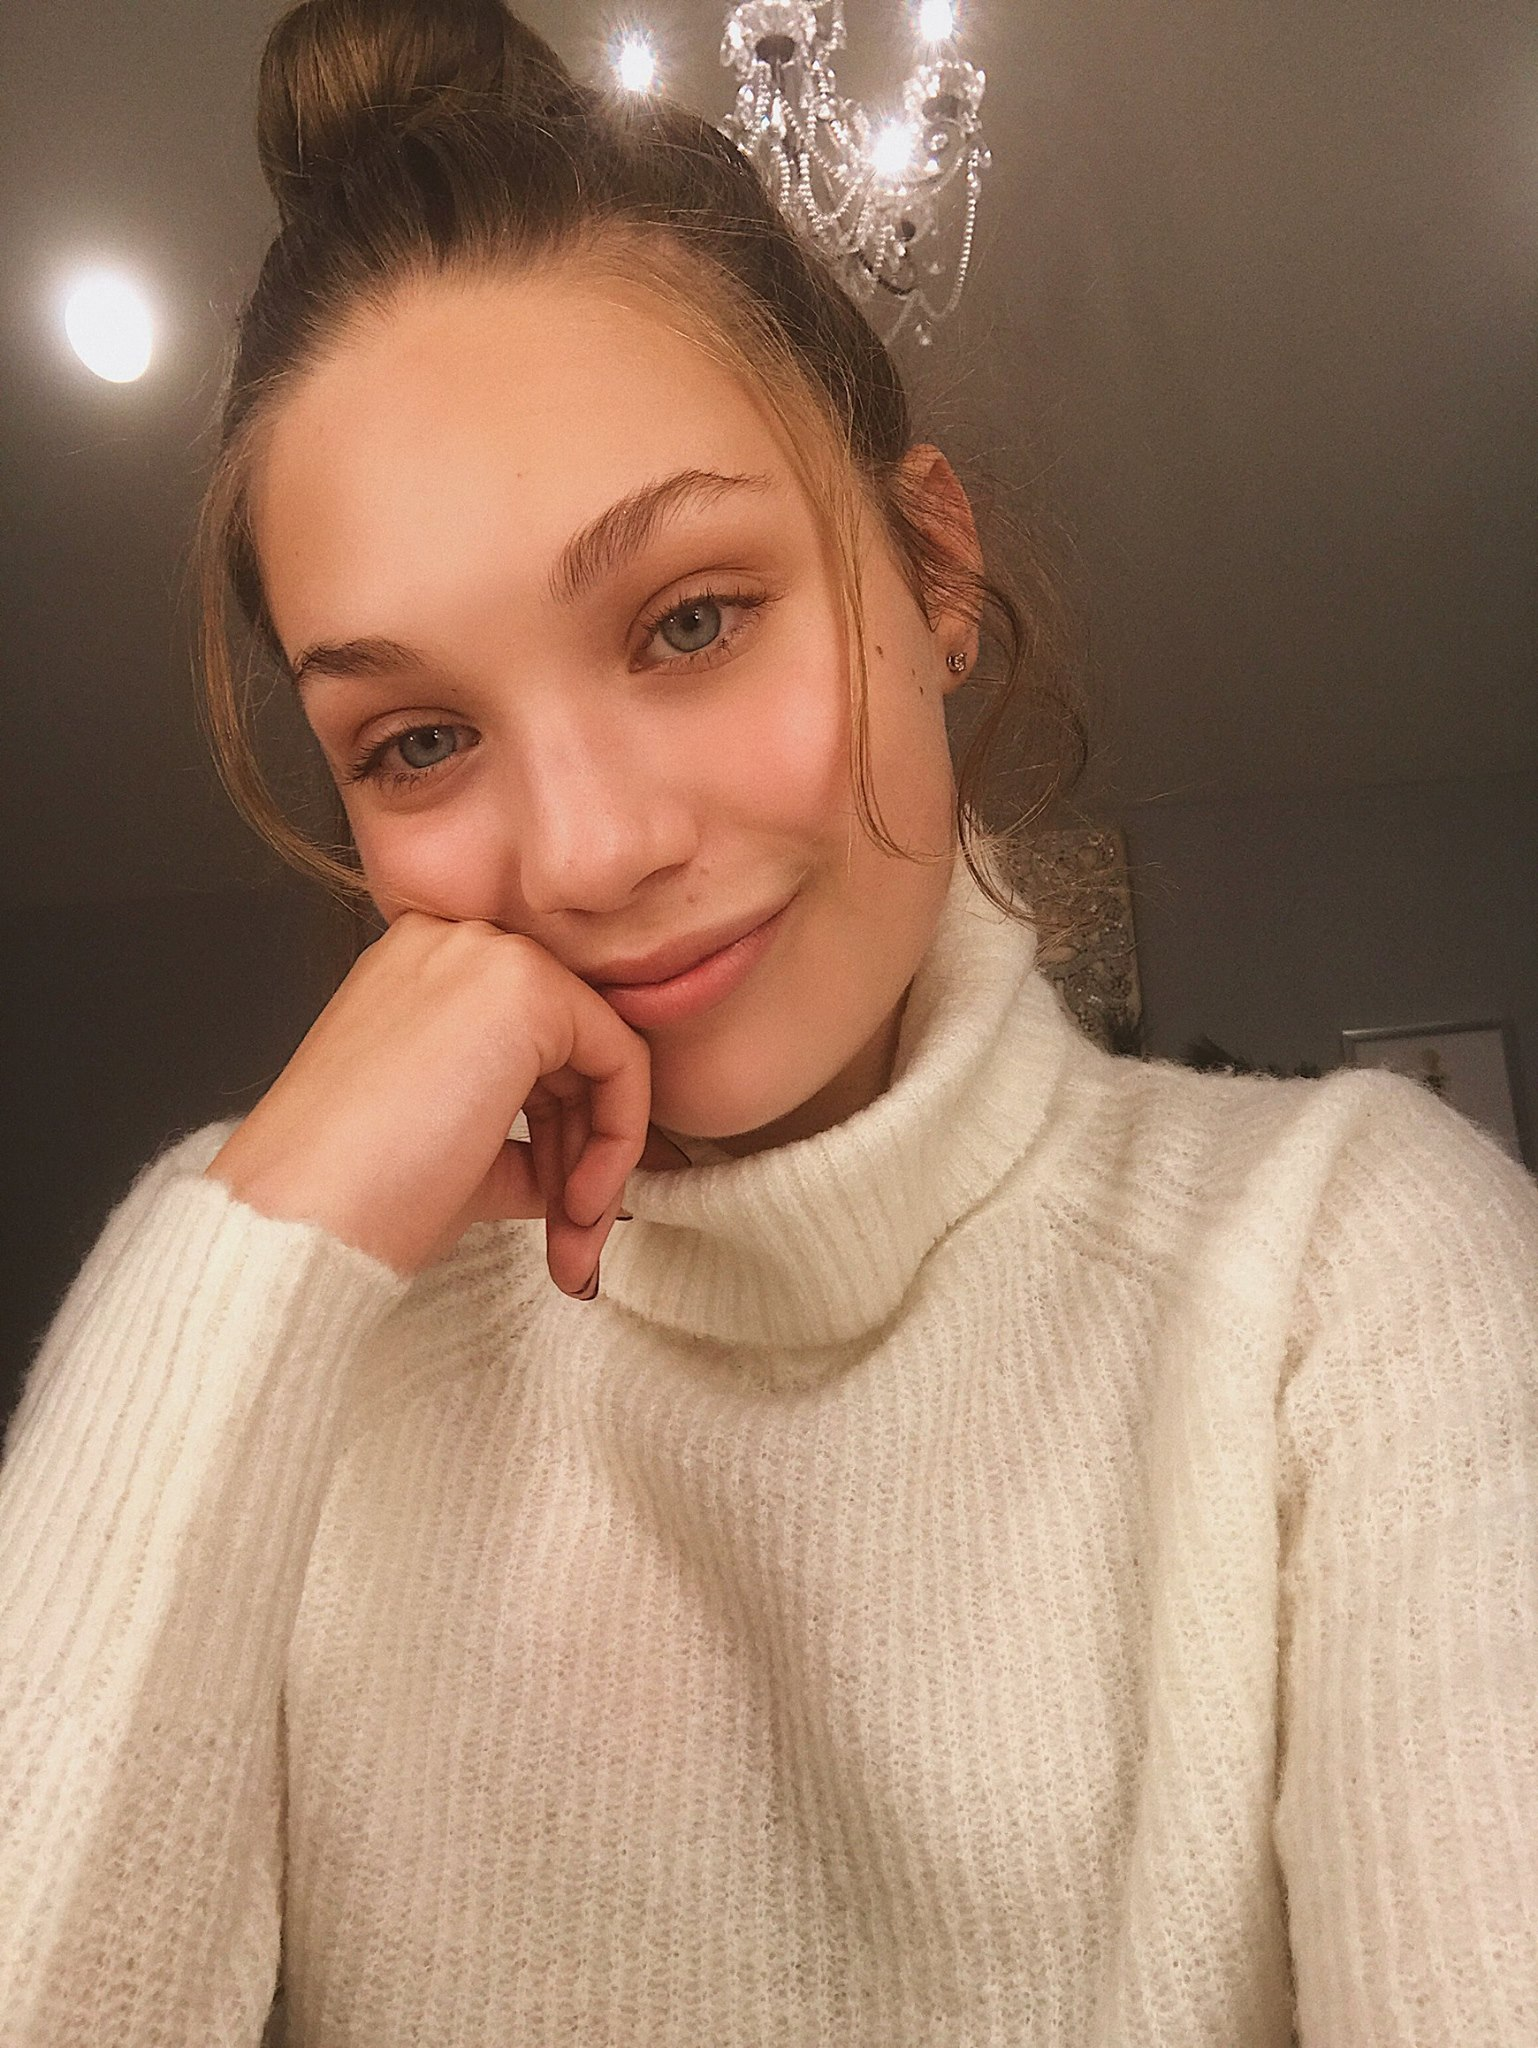 Maddie with little makeup